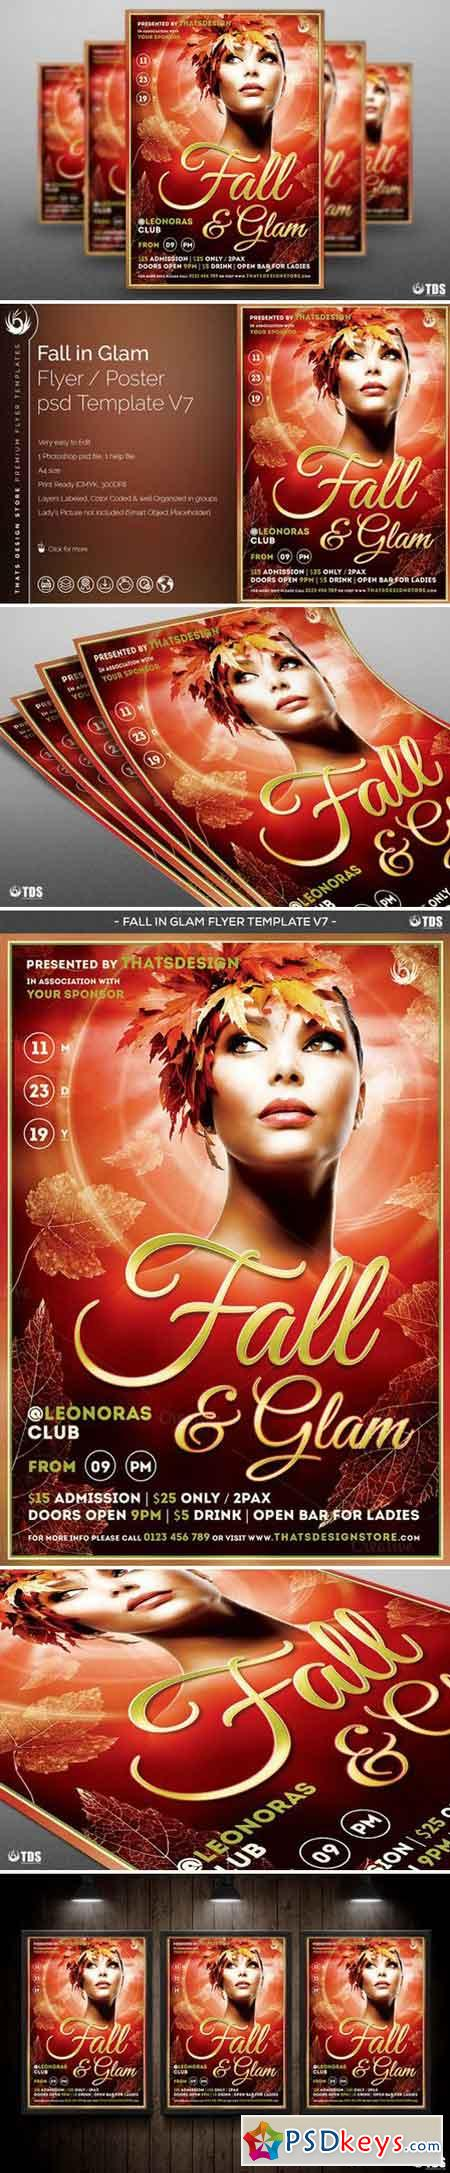 Fall in Glam Flyer Template V7 896080